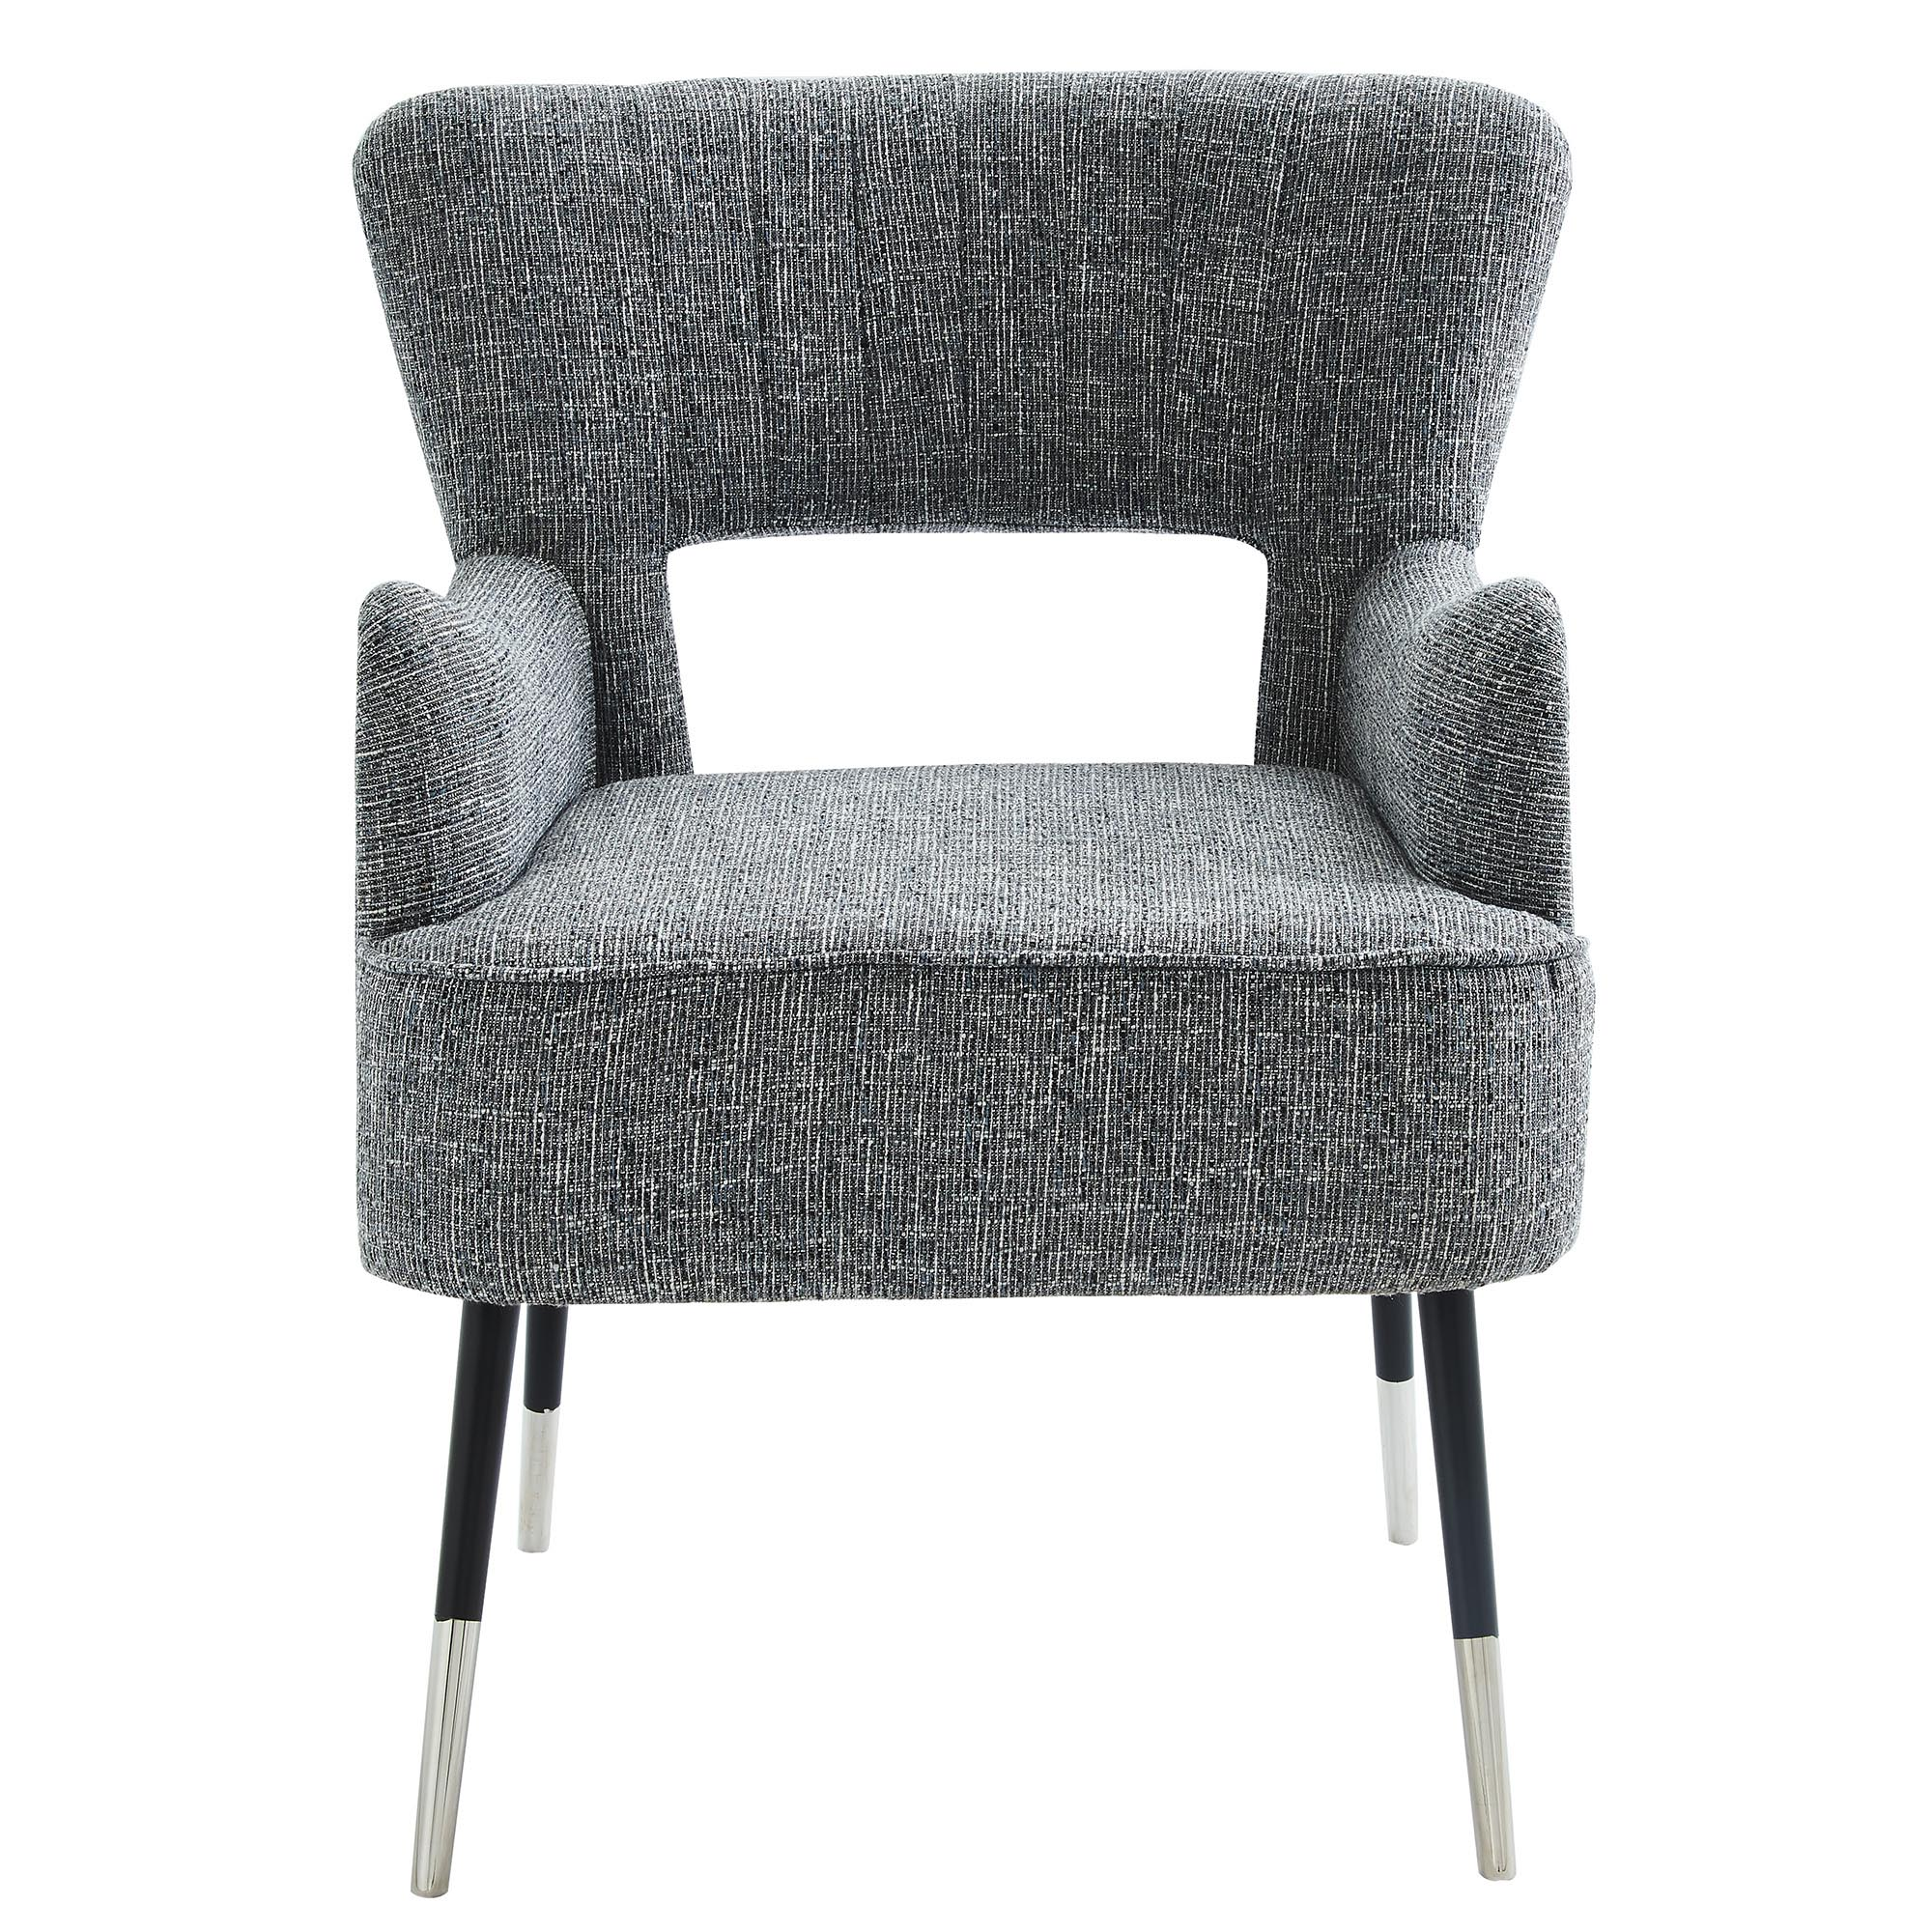 VINCE-ACCENT CHAIR-GREY BLEND, 841173032067, Accent Chairs by Midha Furniture to Brampton, Mississauga, Etobicoke, Toronto, Scraborough, Caledon, Oakville, Markham, Ajax, Pickering, Oshawa, Richmondhill, Kitchener, Hamilton and GTA area